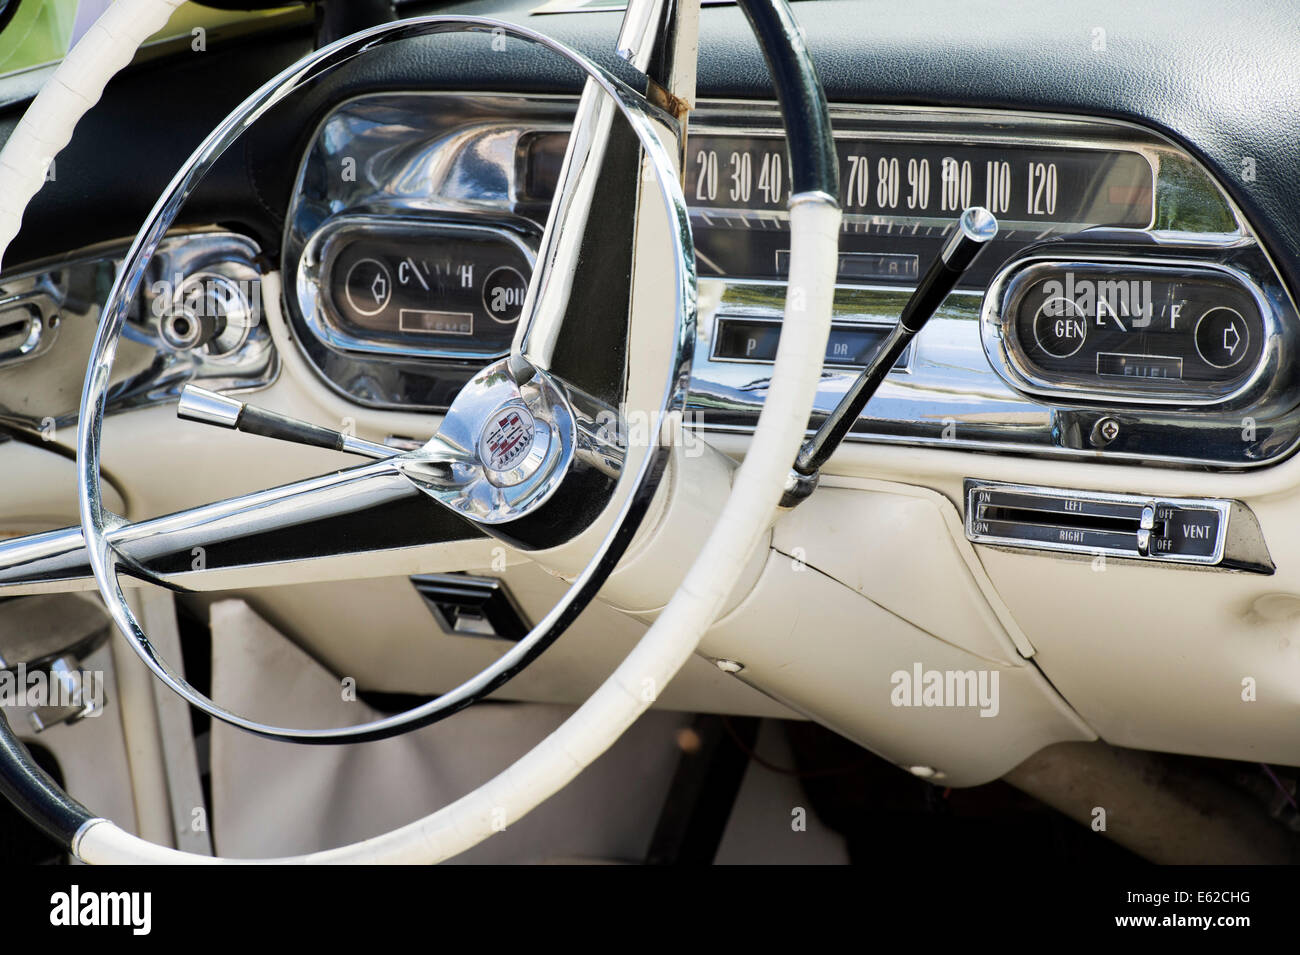 1950s cadillac dashboard and interior abstract classic american car stock photo 72583212 alamy. Black Bedroom Furniture Sets. Home Design Ideas